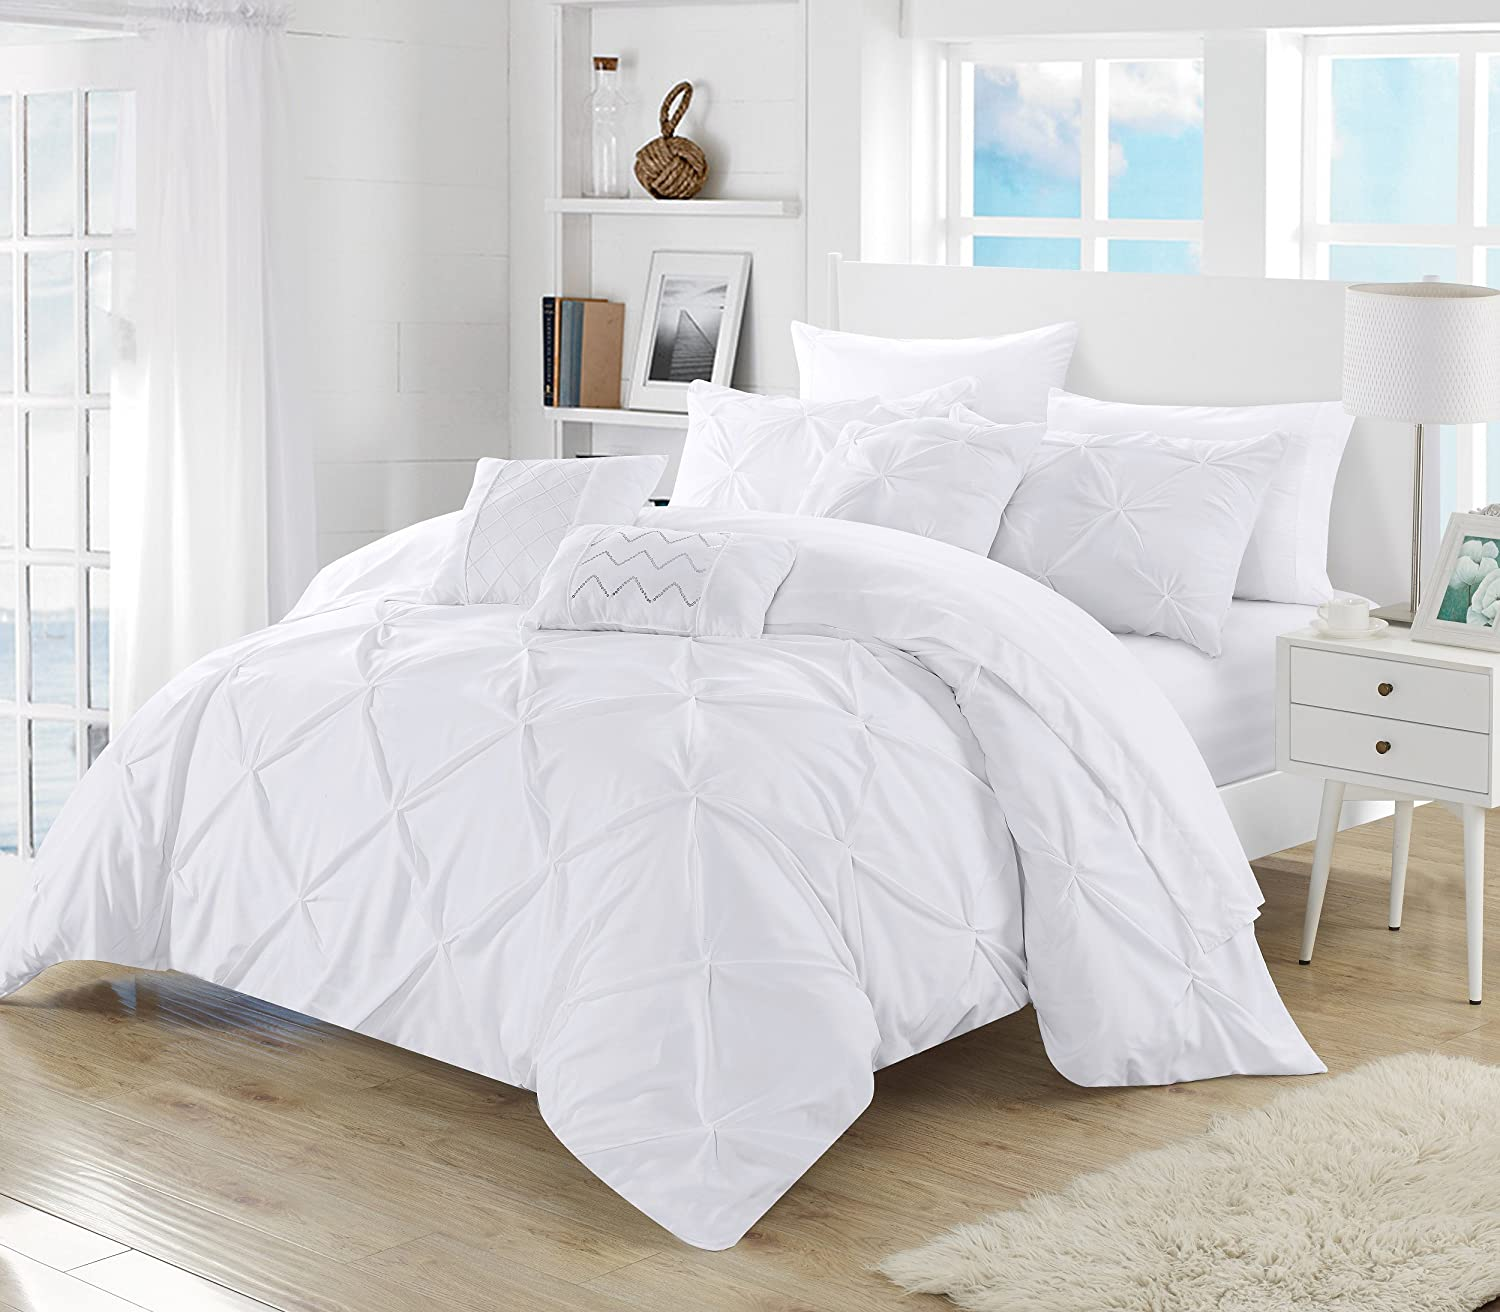 Amazon com perfect home 10 piece zita pinch pleated ruffled and pleated complete king bed in a bag comforter set white with sheet set home kitchen